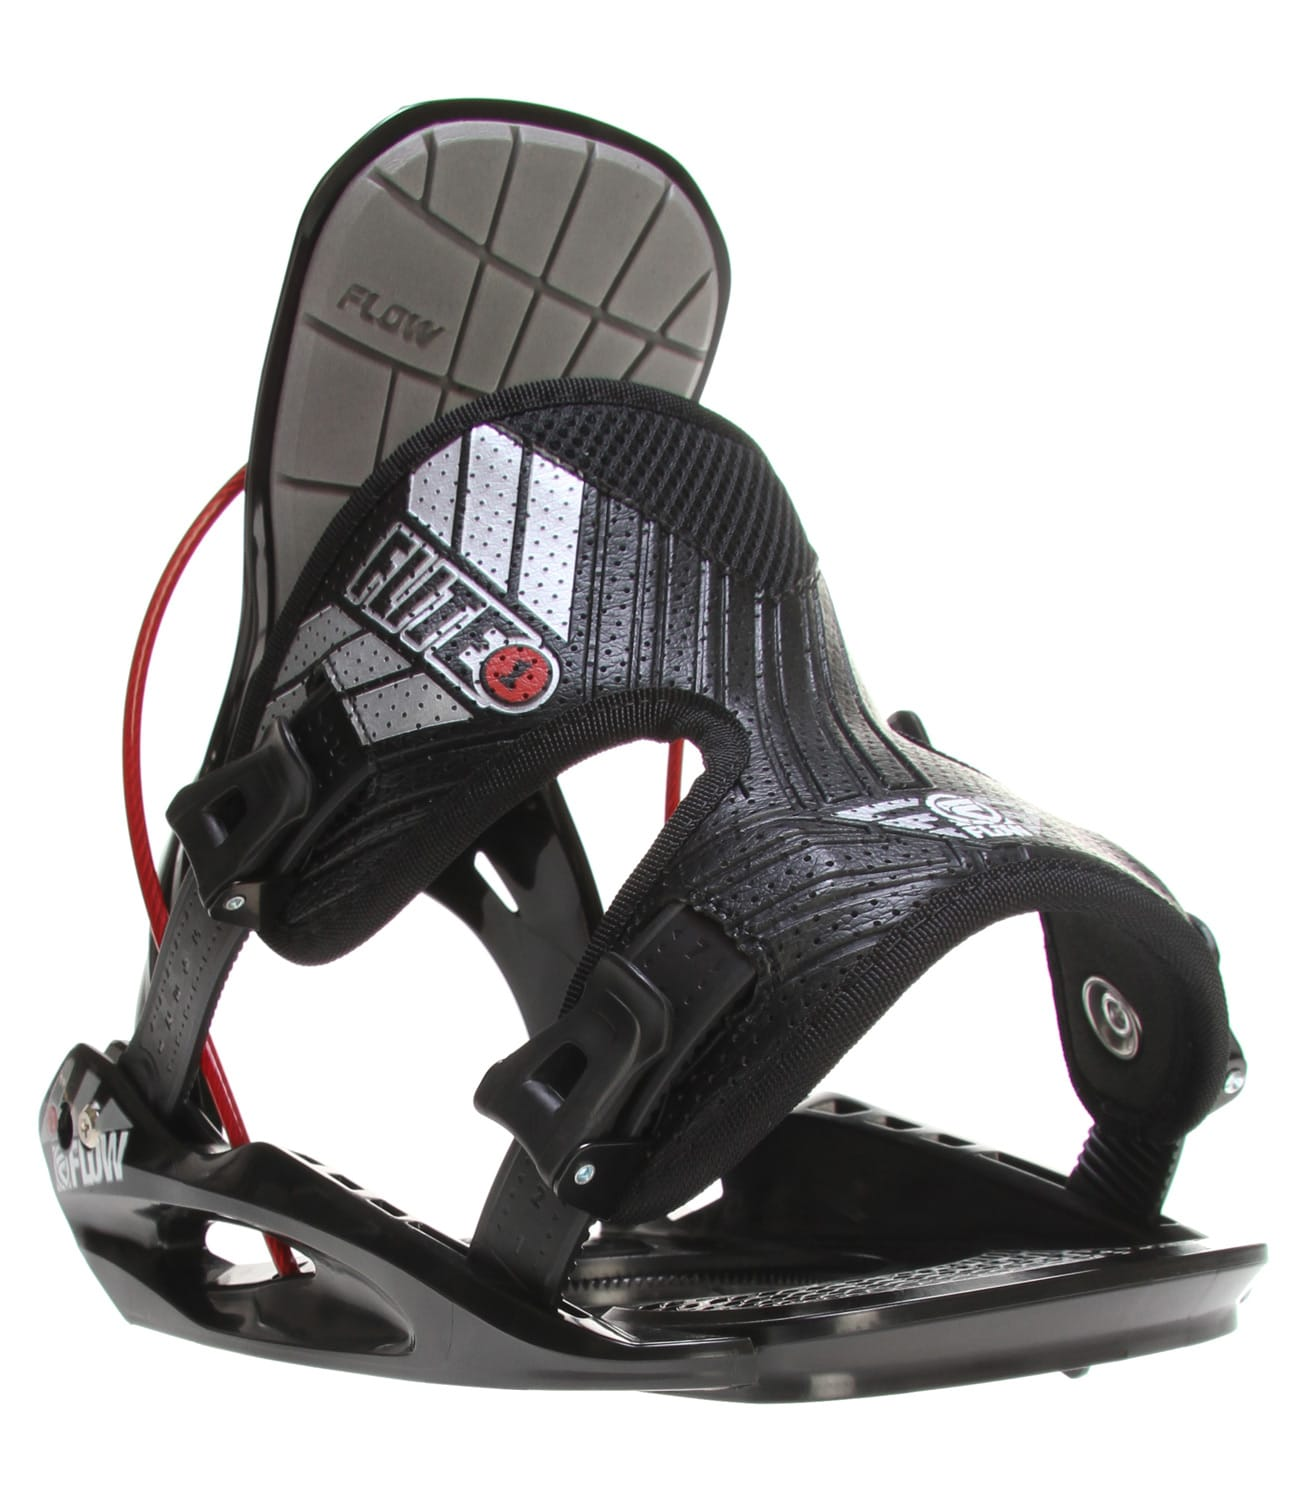 Flow Flite 1 Snowboard Bindings